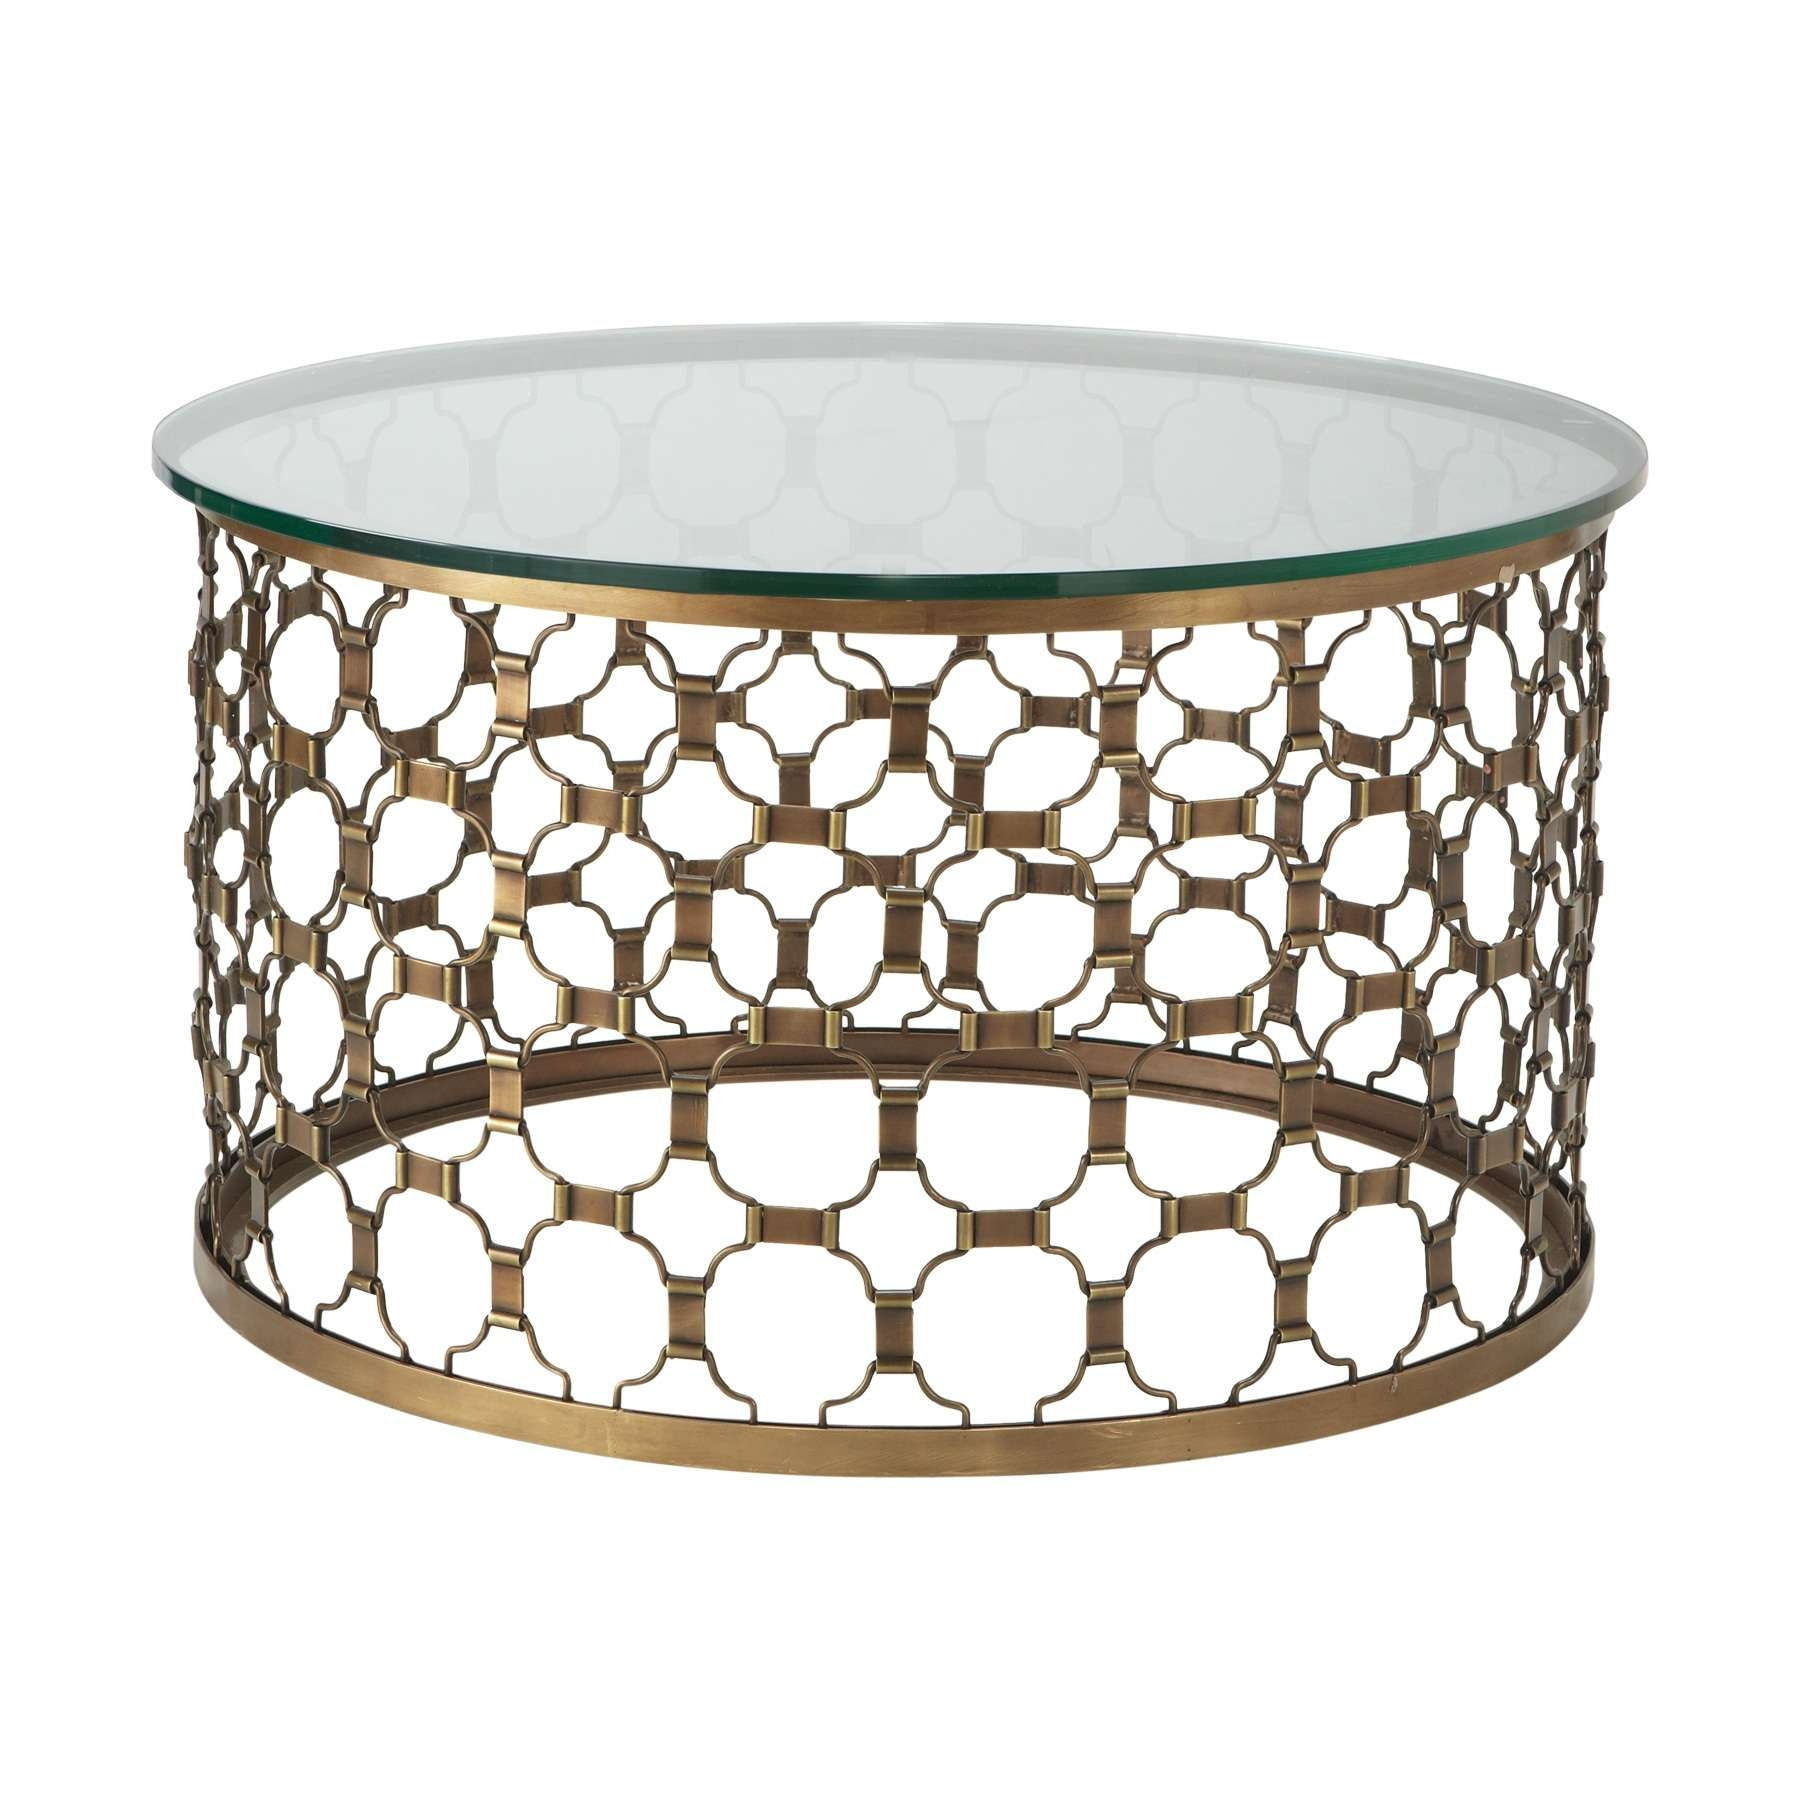 Coffee Tables : Round Coffee Table Wood And Metal Naomi Elegant Pertaining To Preferred Metal Round Coffee Tables (View 2 of 20)